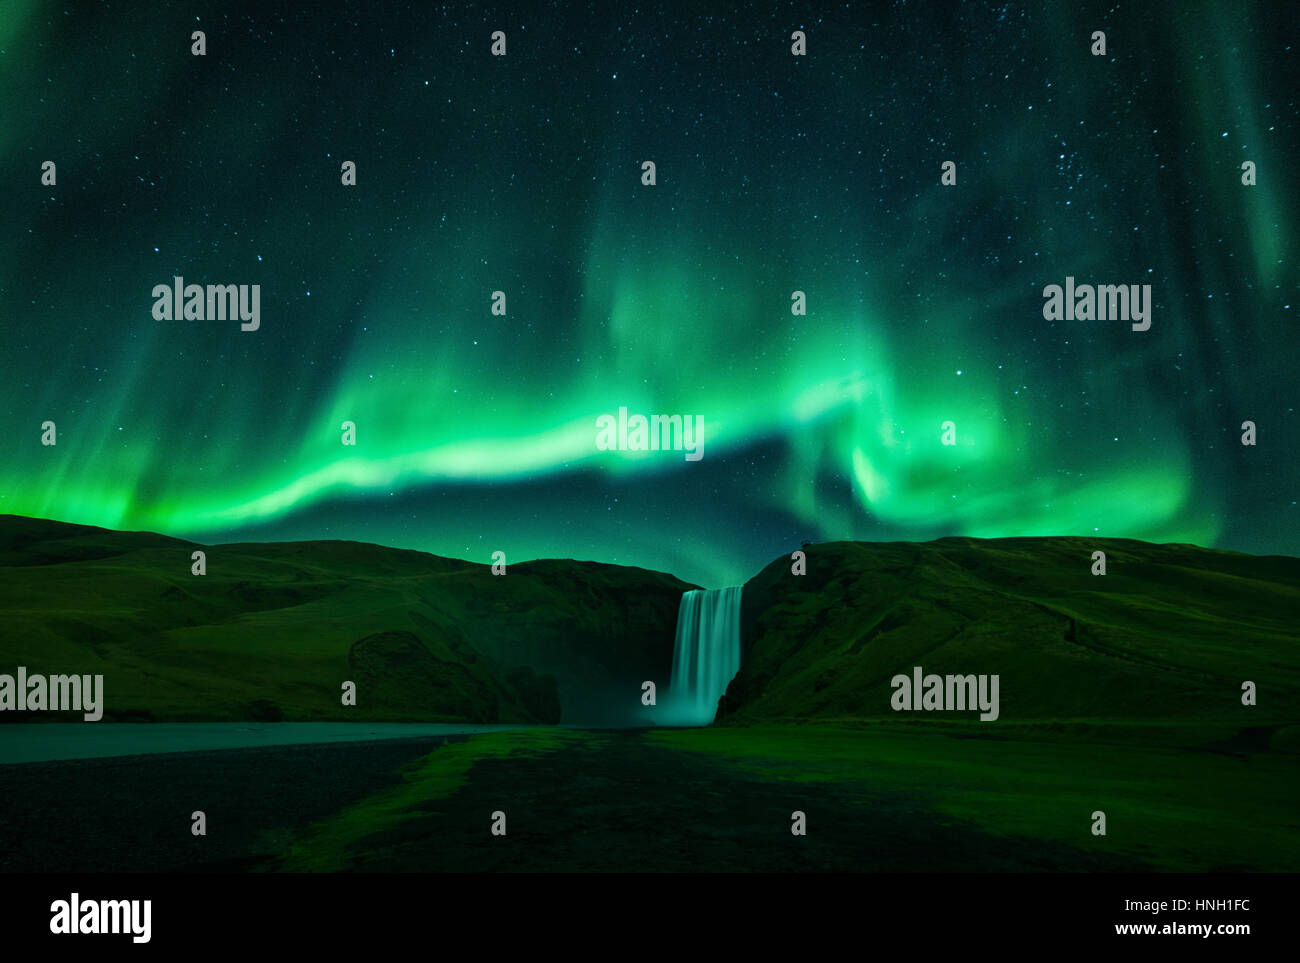 the-northern-lights-aurora-borealis-ligh